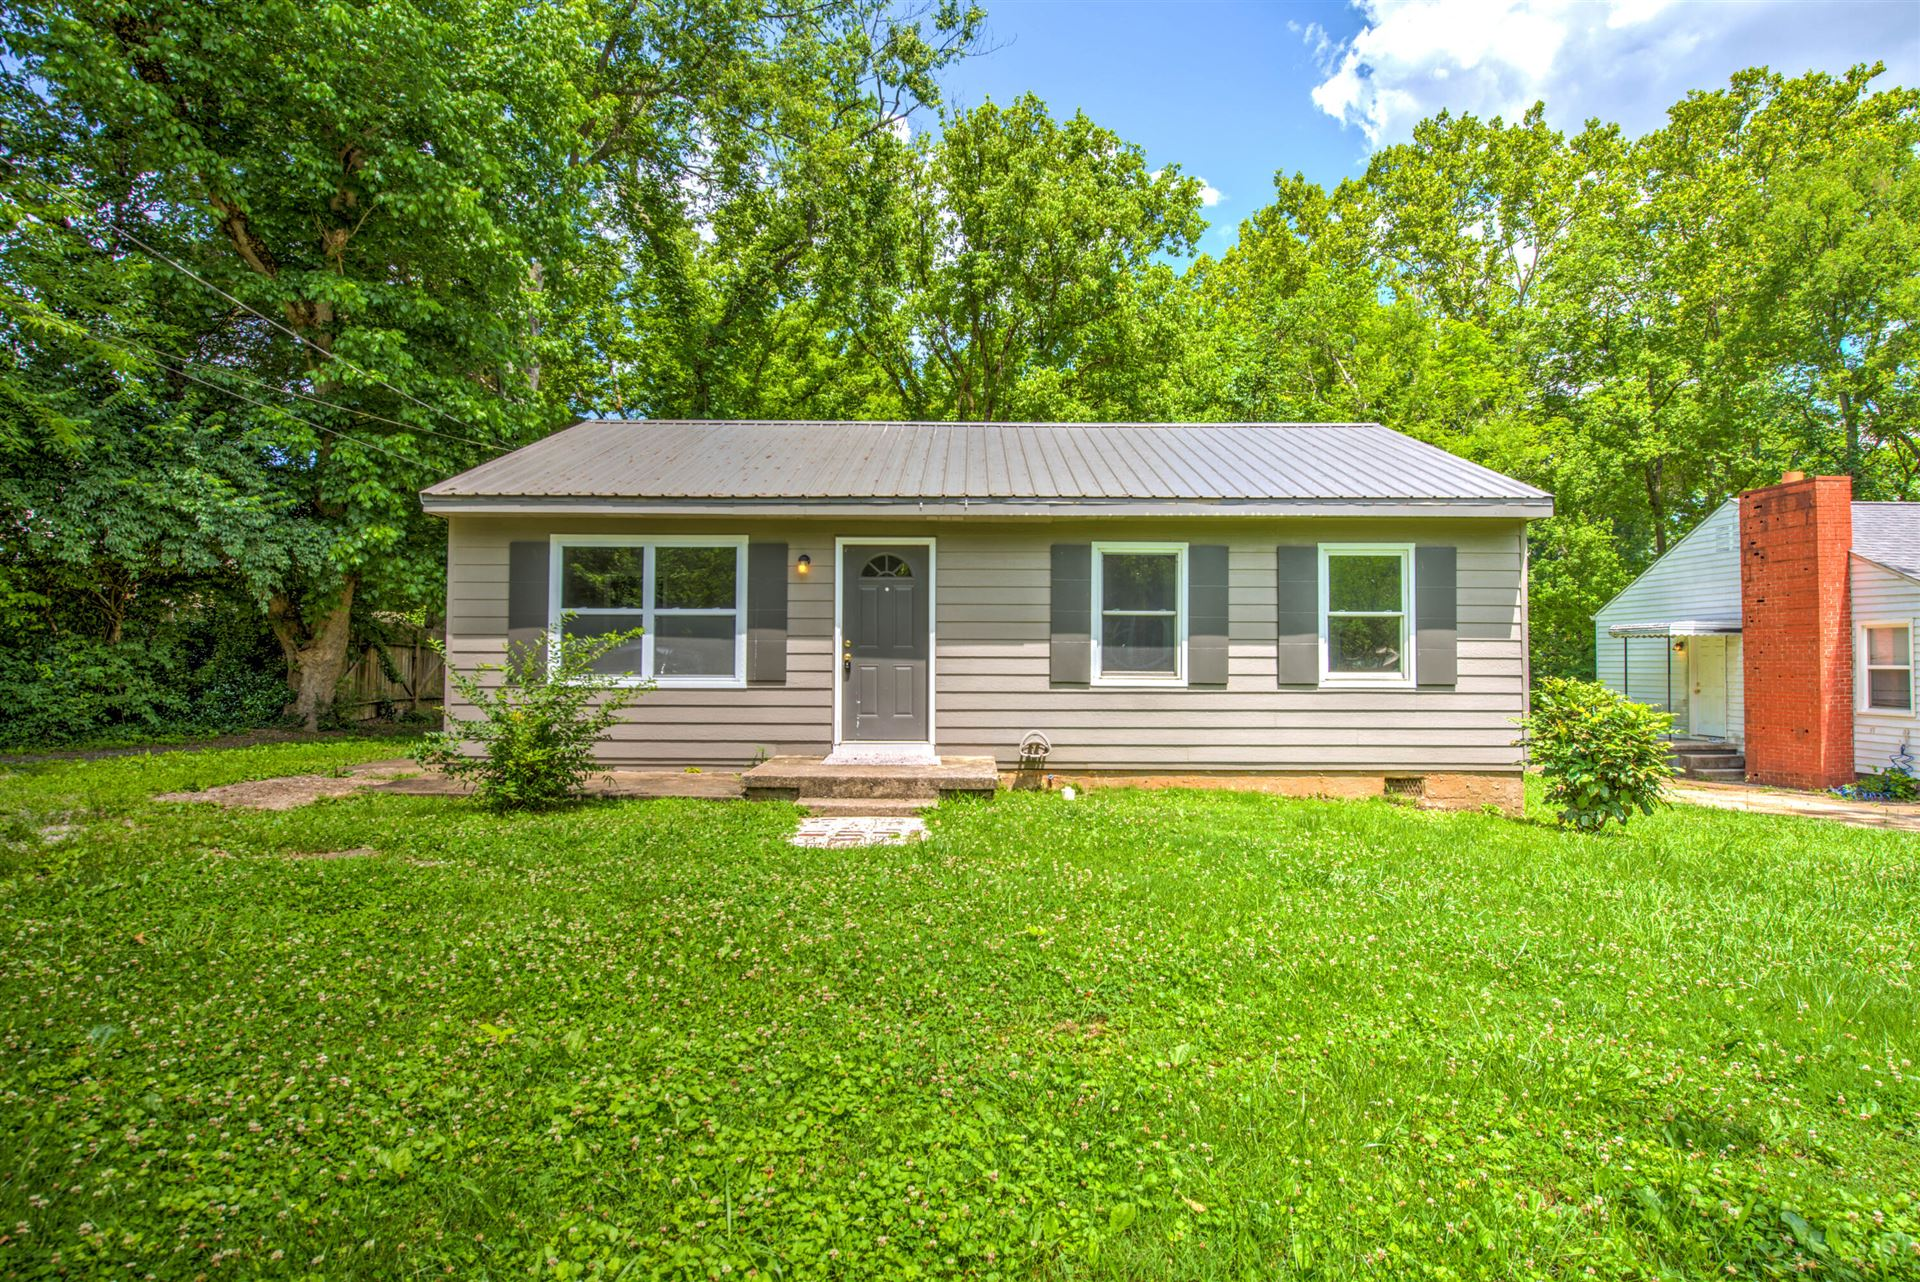 Photo of 523 Avenue A, Knoxville, TN 37920 (MLS # 1154940)